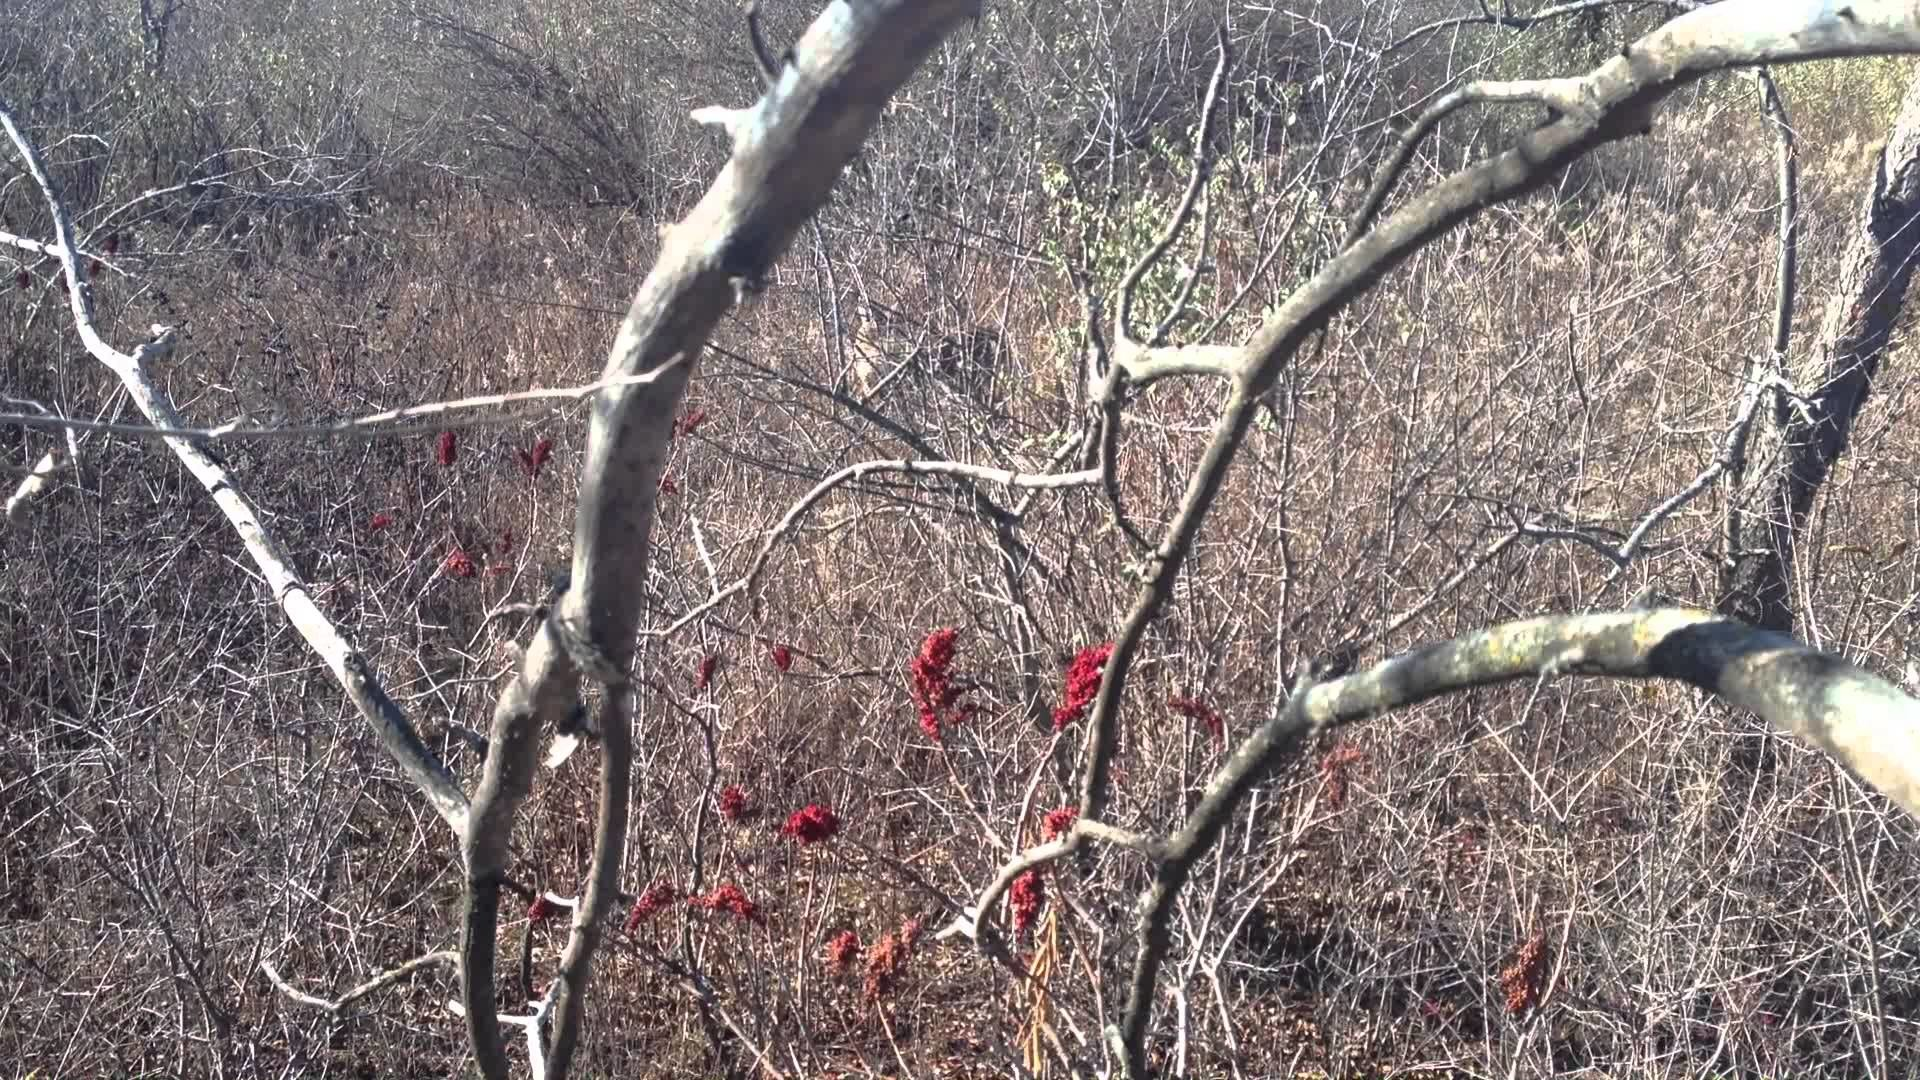 Res: 1920x1080, Deer Hunting with Mathews LX bow, with Easy Bow Cam mounted with iphone 4s  - YouTube